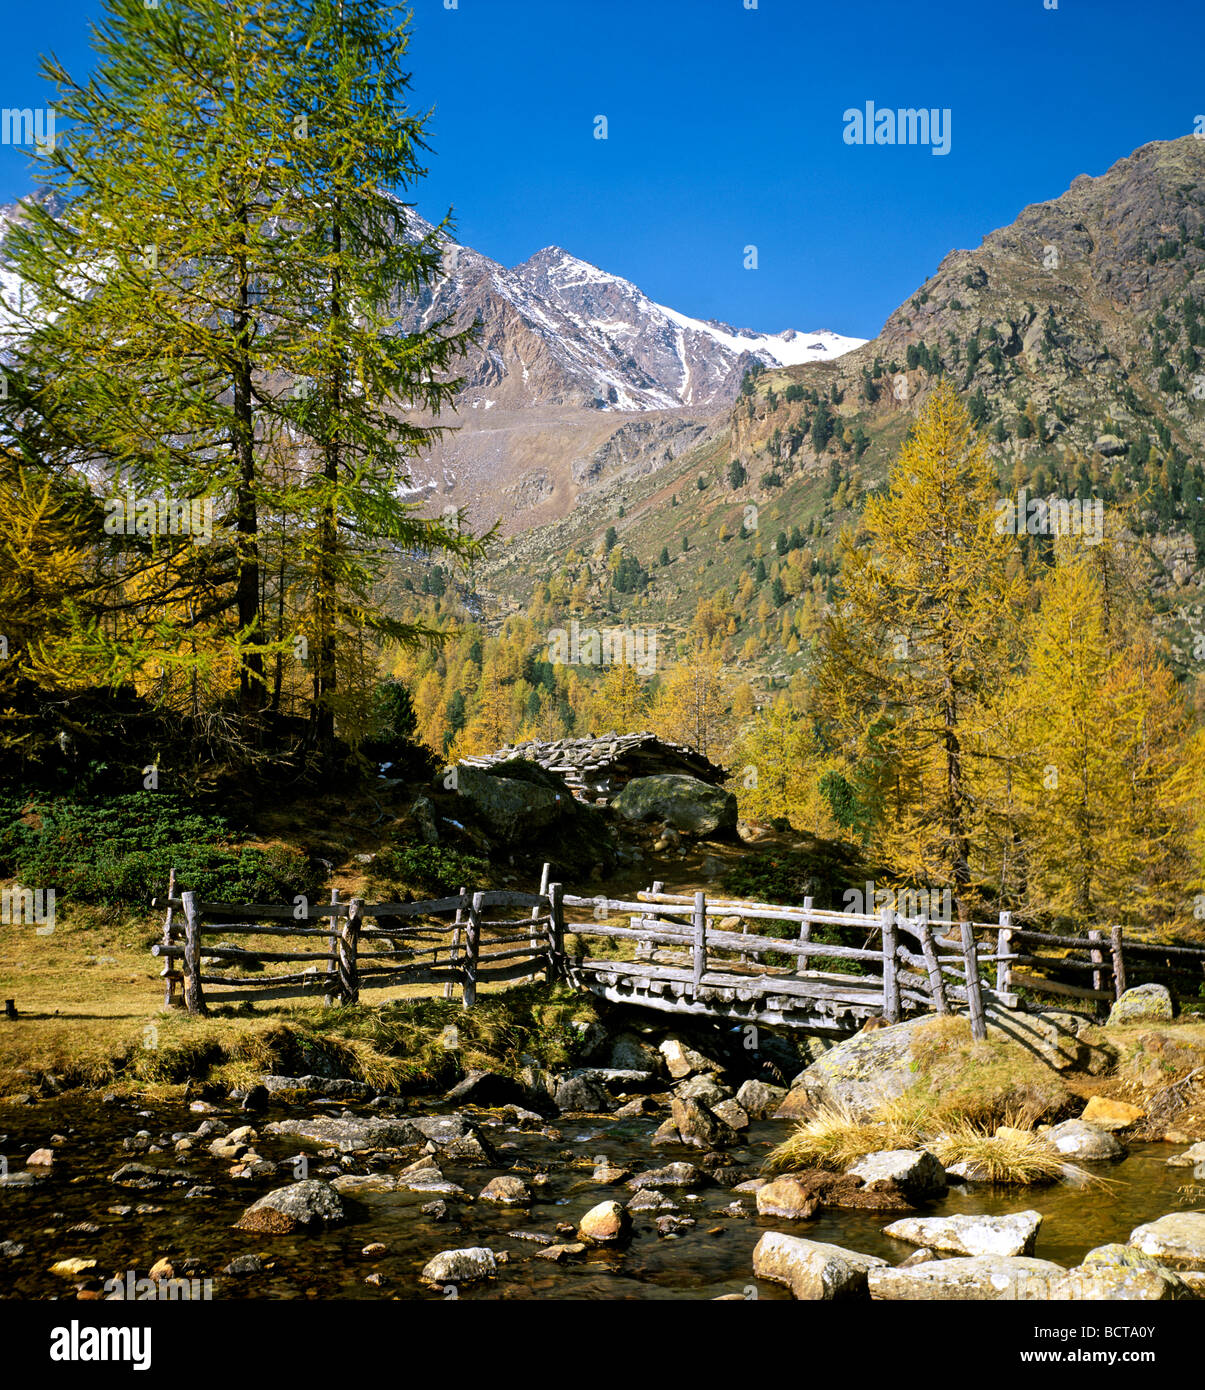 Hiking trail, Weissbrunnalm, Oberes Ultental vally, Ortler Group mountains, South Tyrol, Italy, Europe - Stock Image